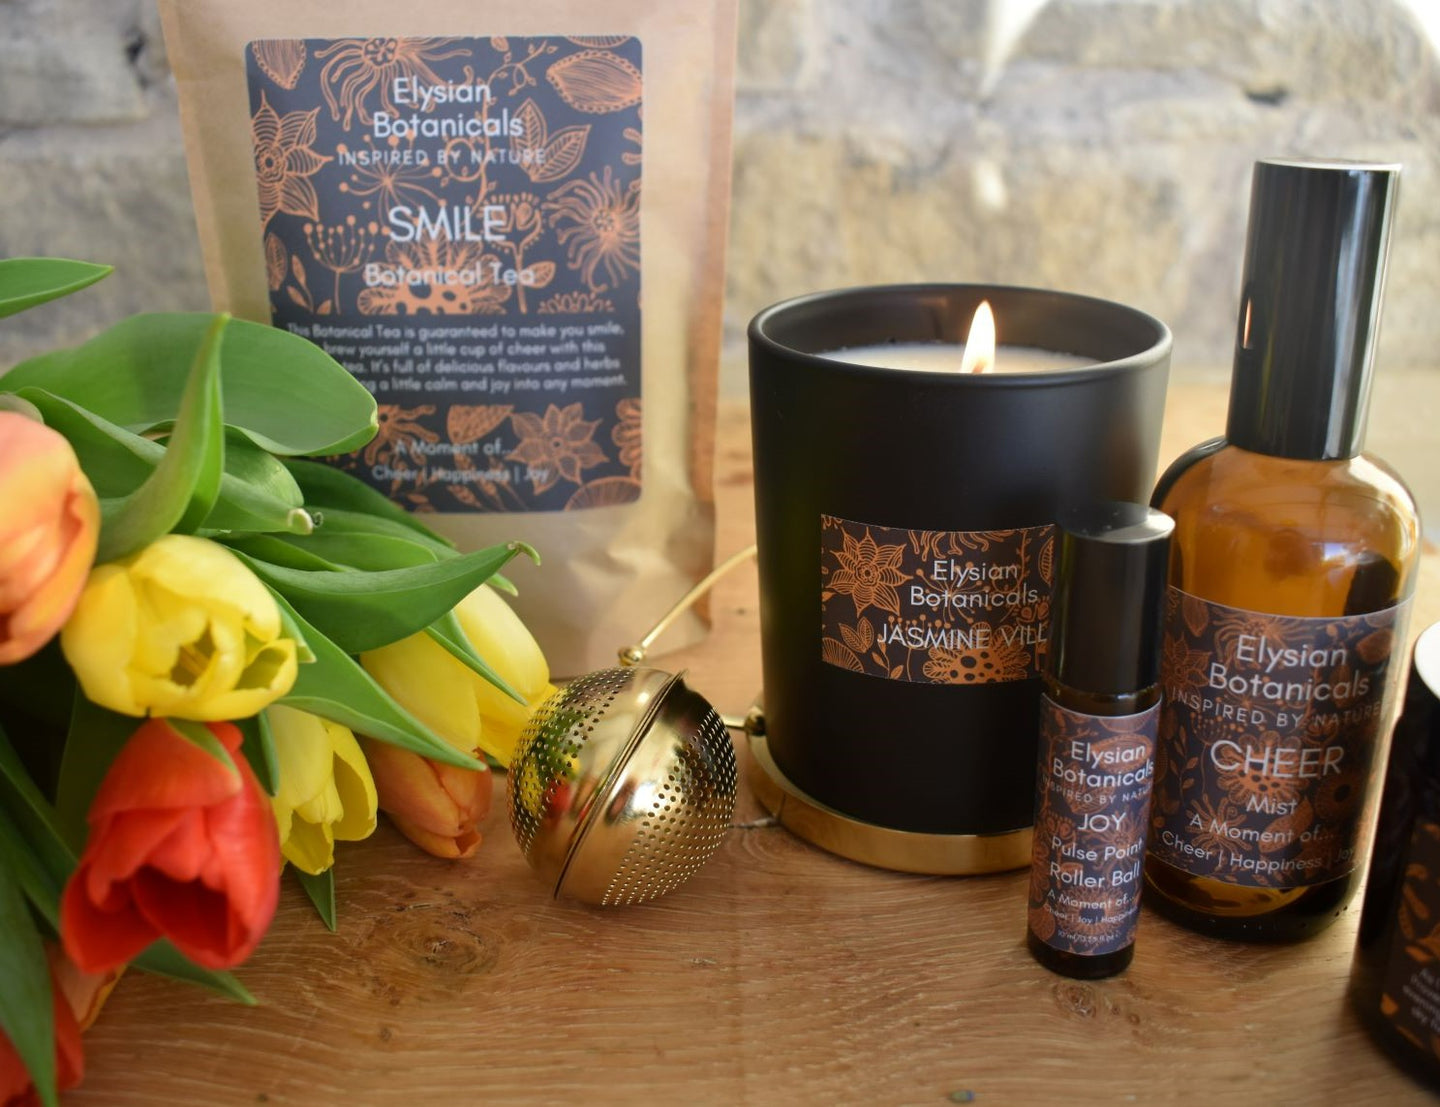 Create a happy moment with a cheery spritz of our atmosphere mist, a dash of our aromatherapy roll on, a sip of our herbal tea, a relax in our bath soak and the scent of a hand poured soy wax candle. All created to uplift and energise.